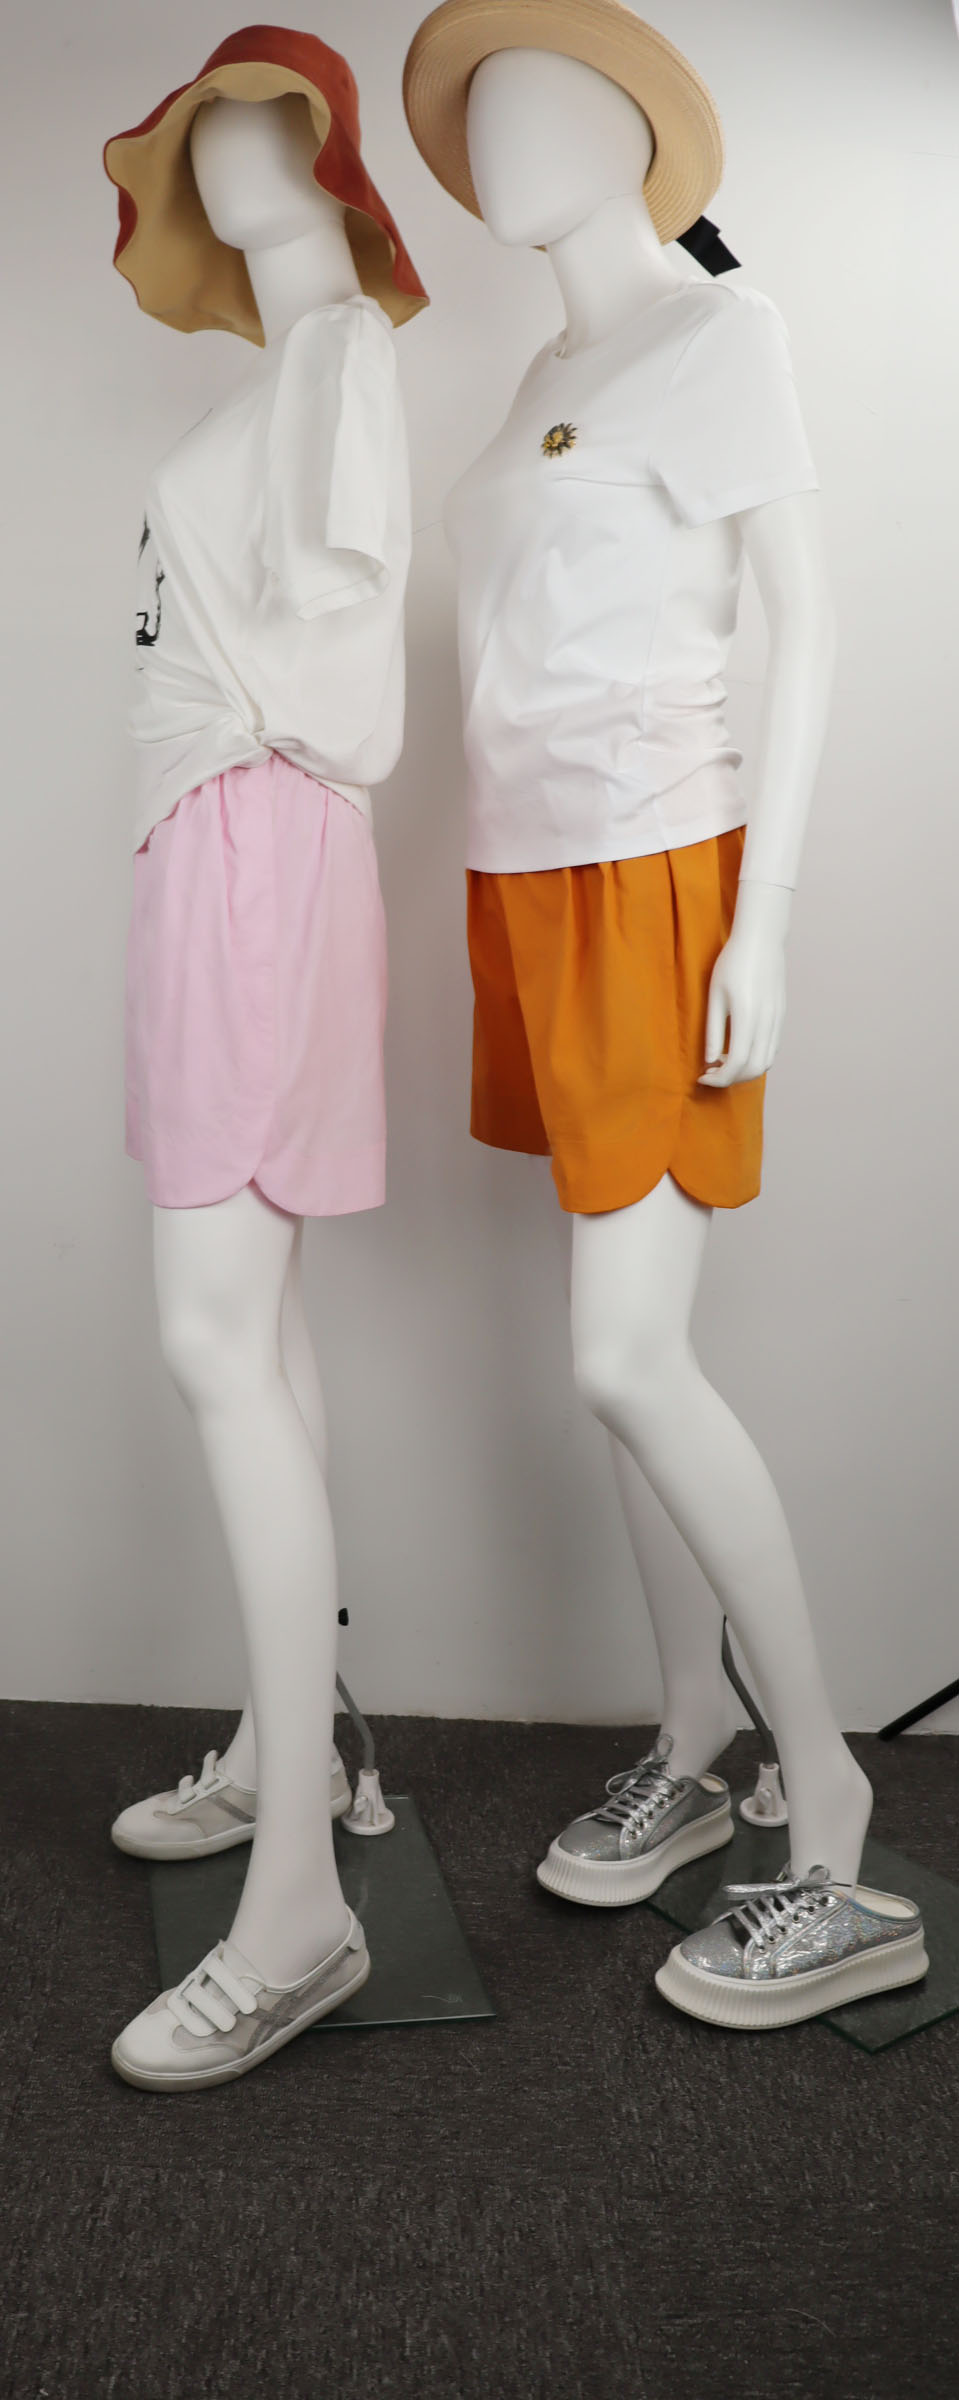 Summer 2020 cotton loose shorts, sports pants and jogging pants